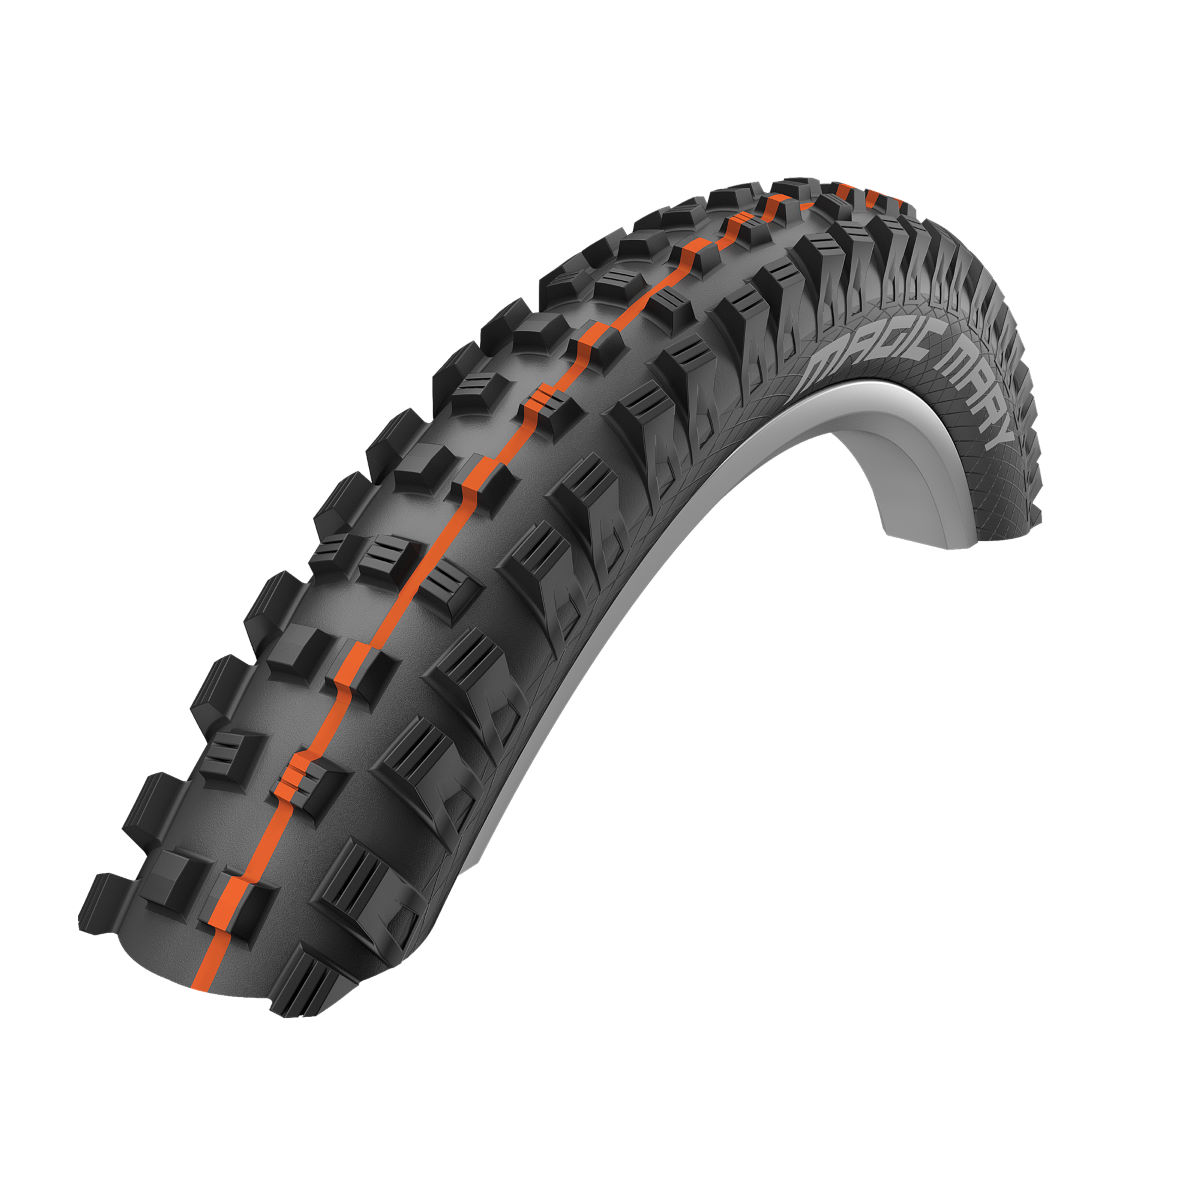 Pneu VTT Schwalbe Magic Mary Addix SnakeSkin (souple) - Black - Orange